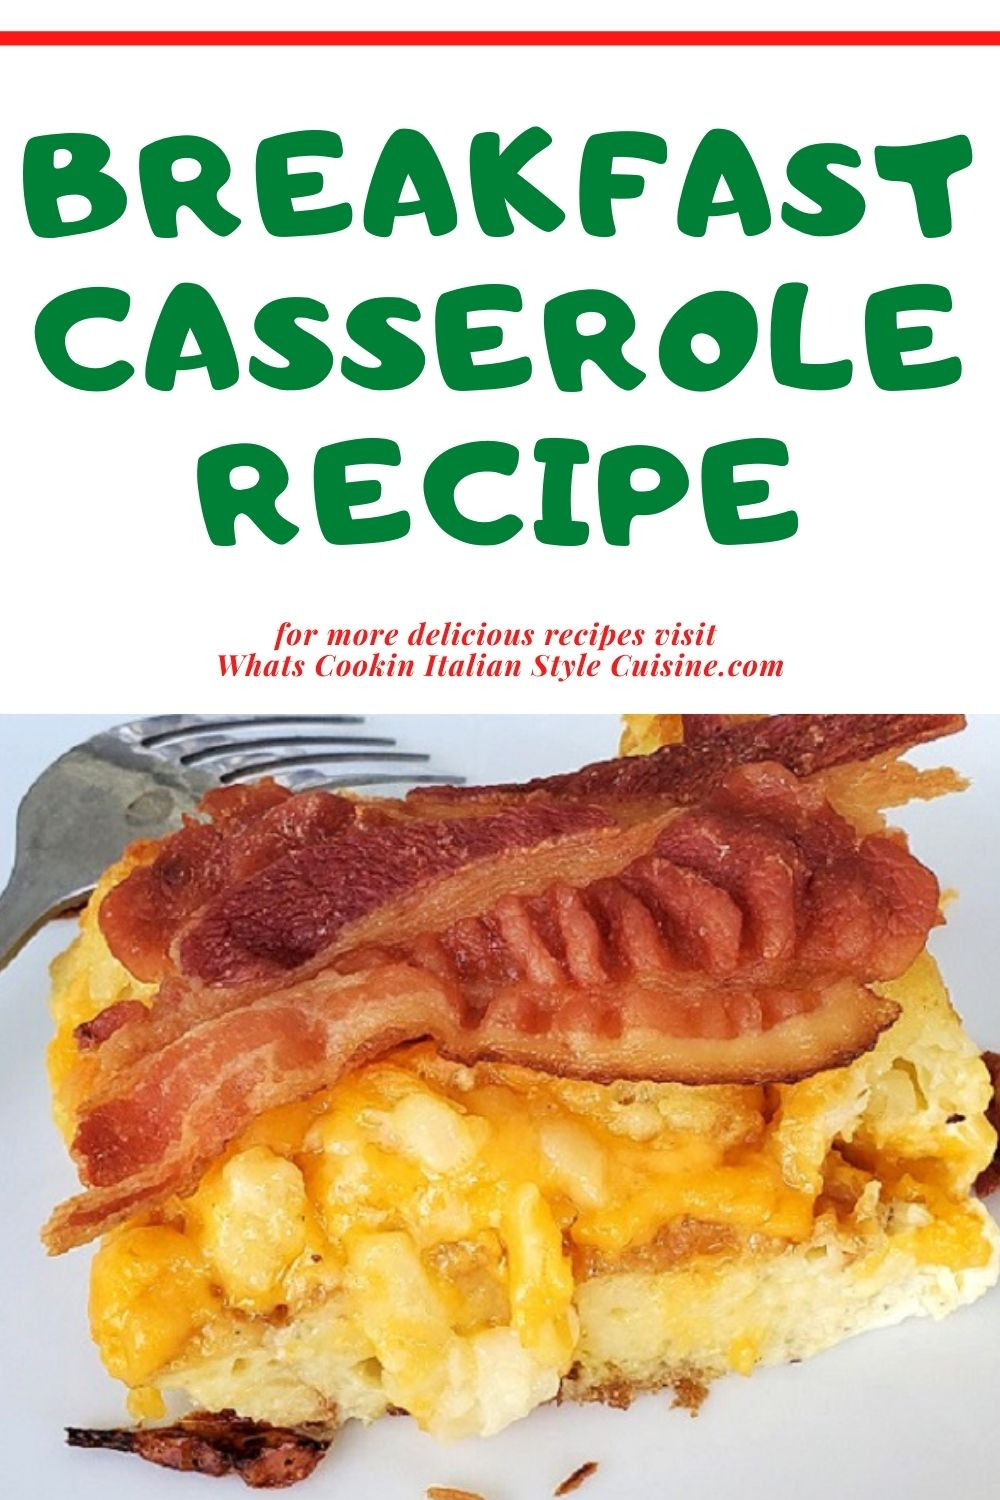 this is a pin for later on how to make a bacon, eggs and cheese casserole for an easy breakfast